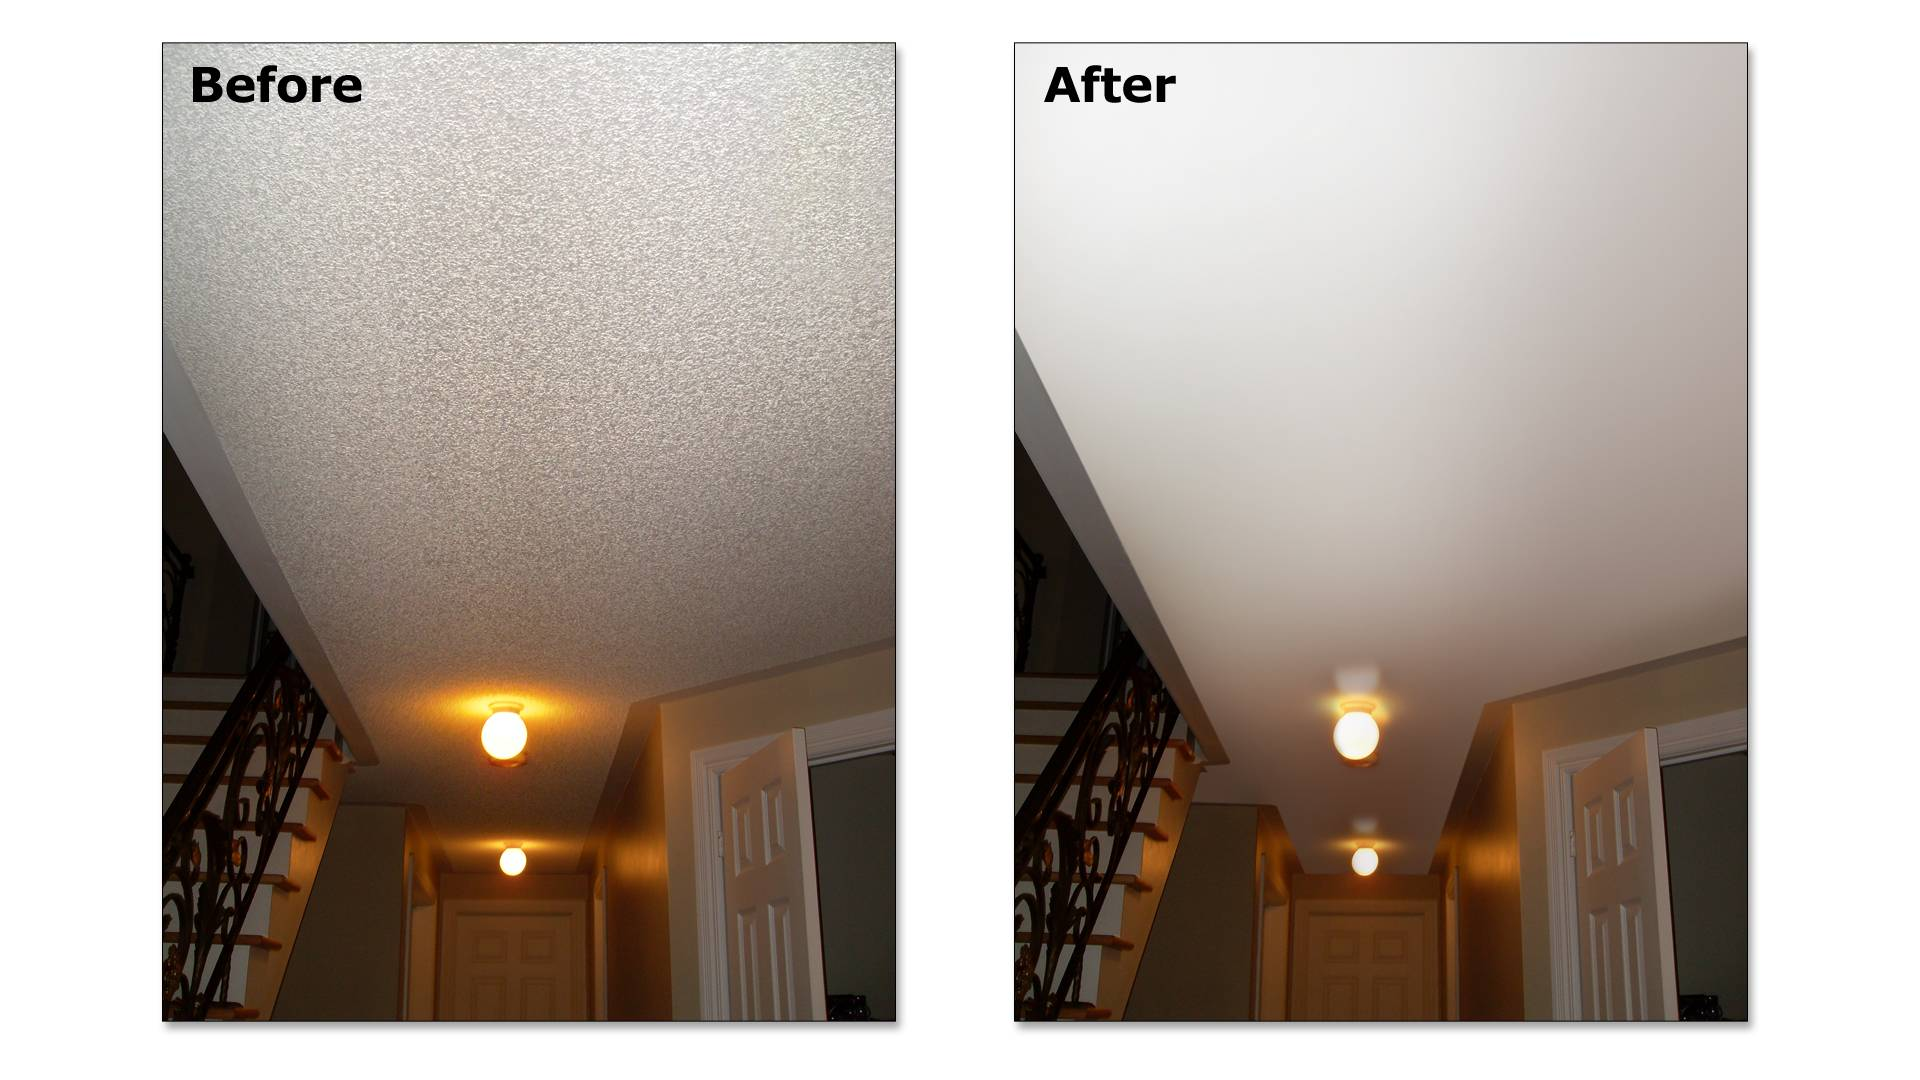 Cheery Provide You We Will Promptly Reply To You As Soon Ceiling Texture Popcorn Removal Give A New Look To Your Home A Detailed Estimate At No Orfill Out Quote Form House houzz-03 Cost To Remove Popcorn Ceiling